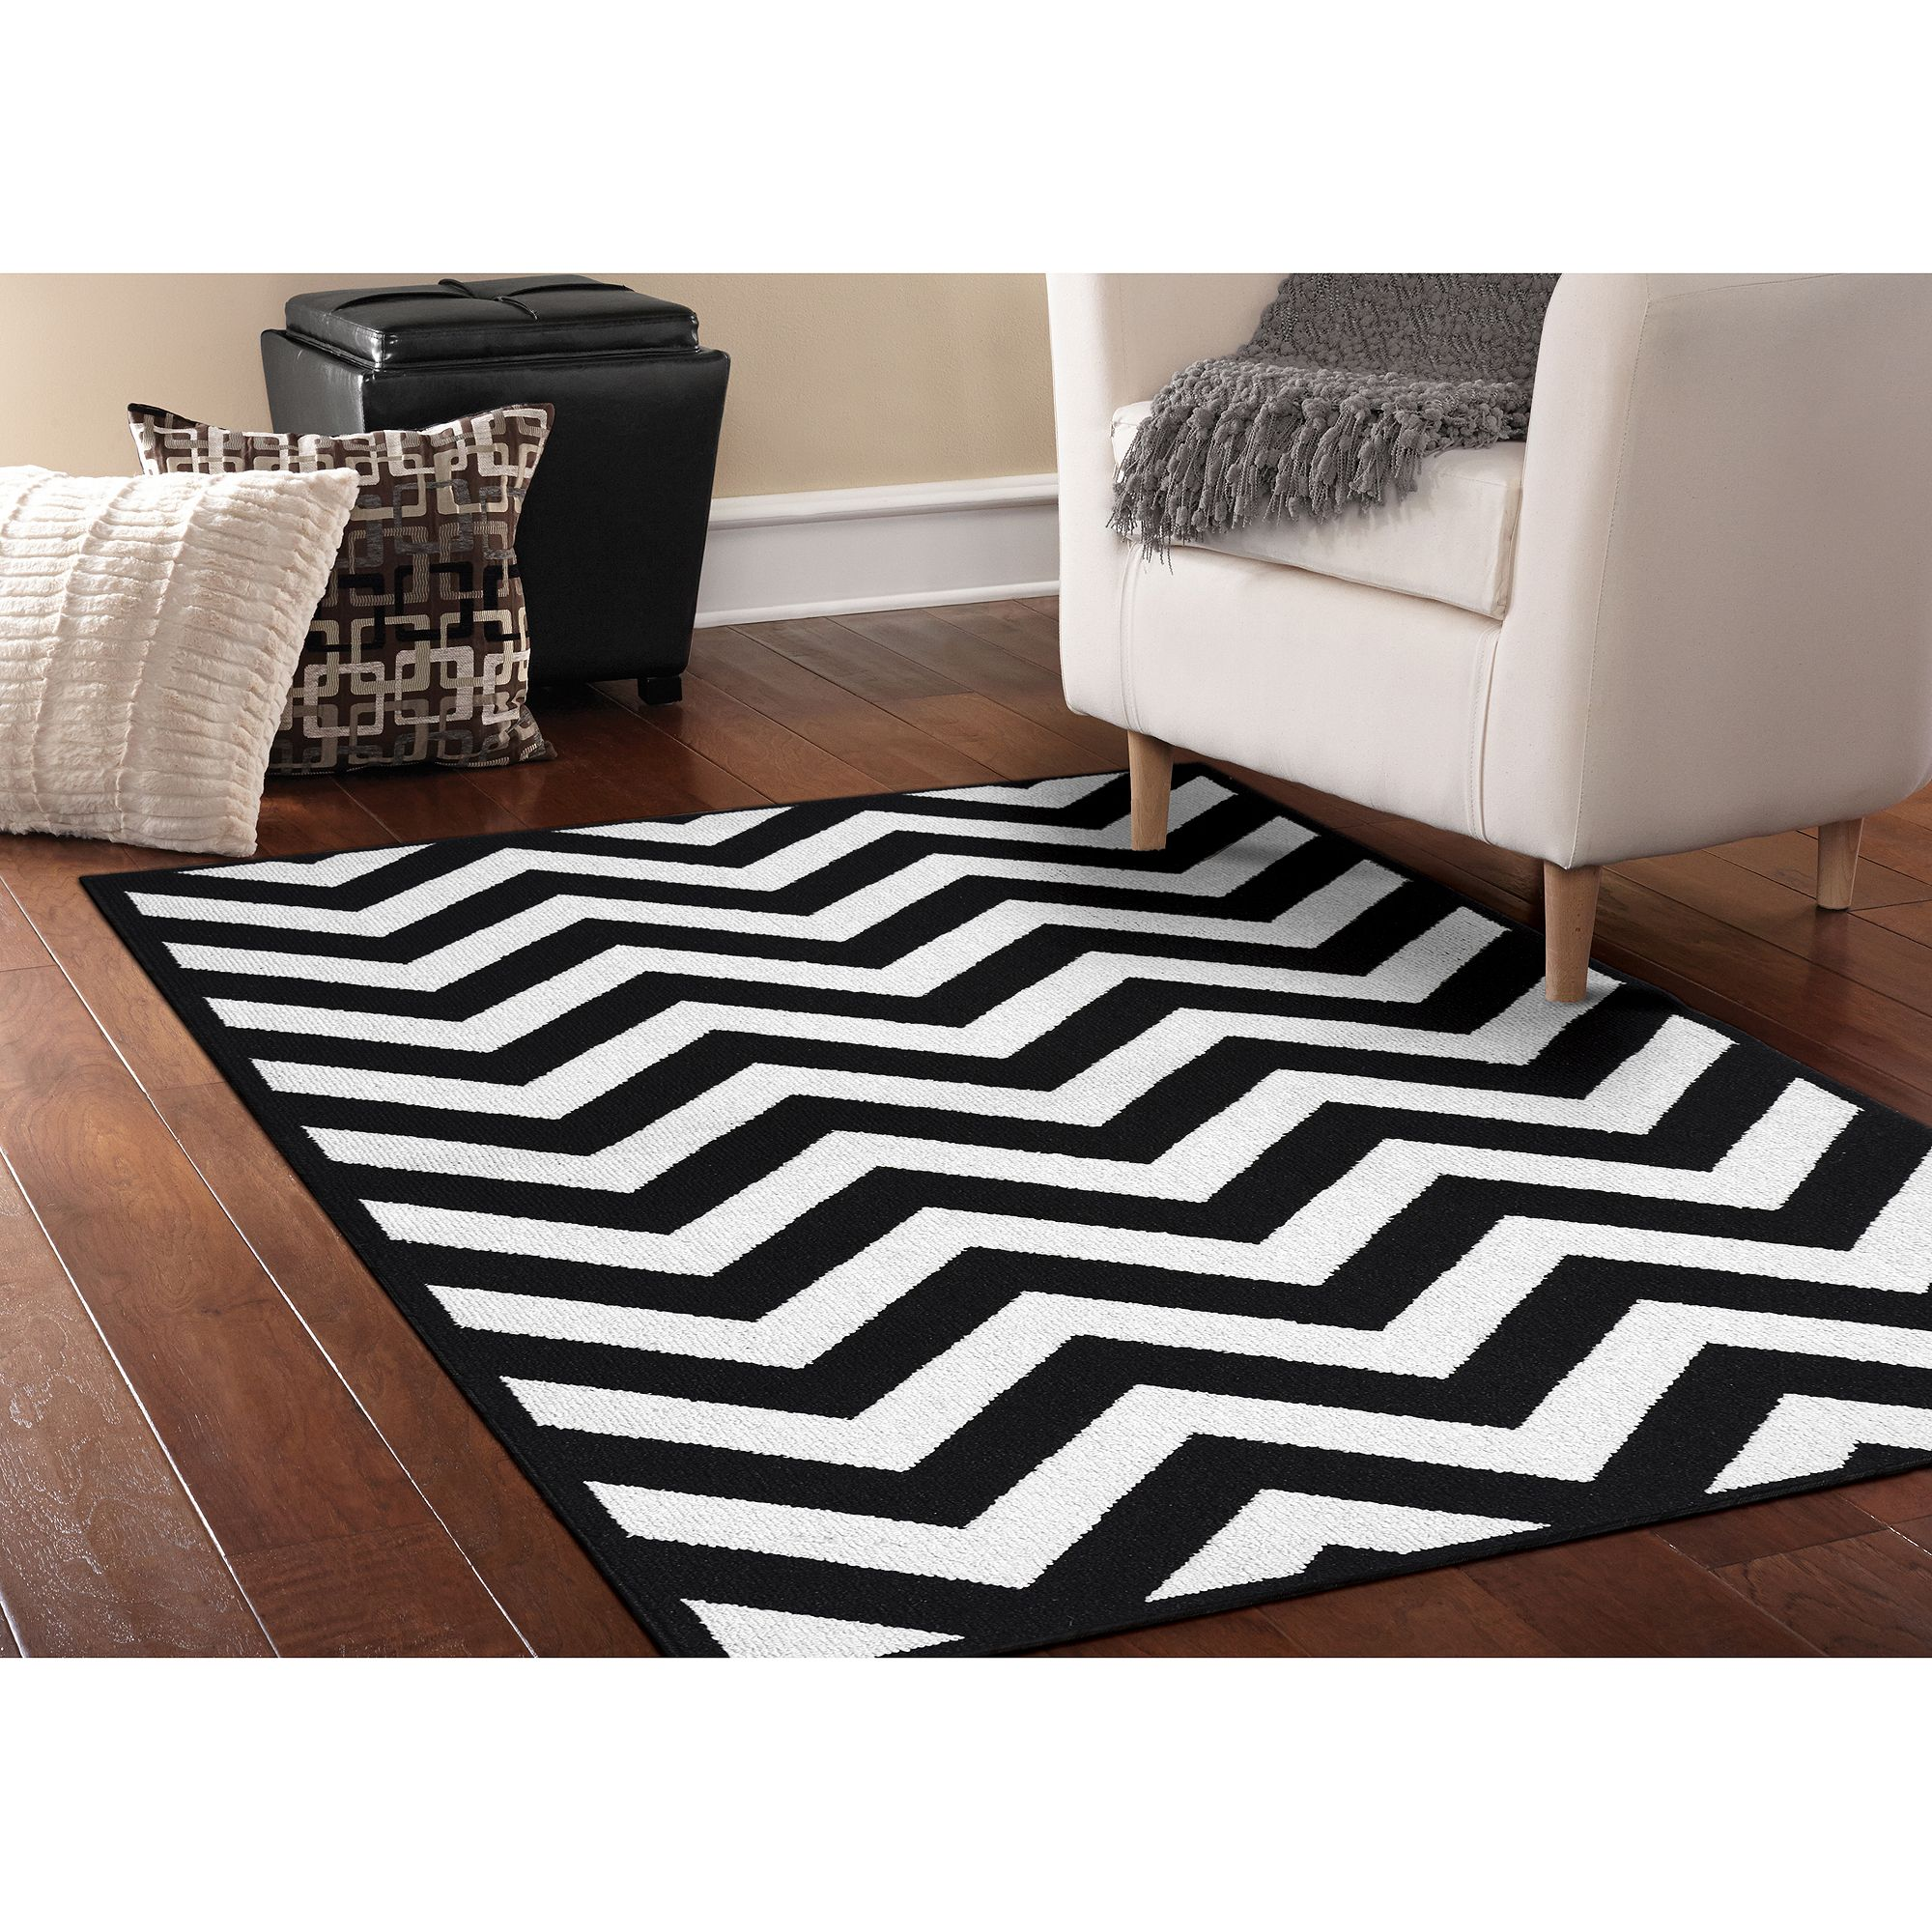 Home Chevron Area Rugs Large Rugs Rugs